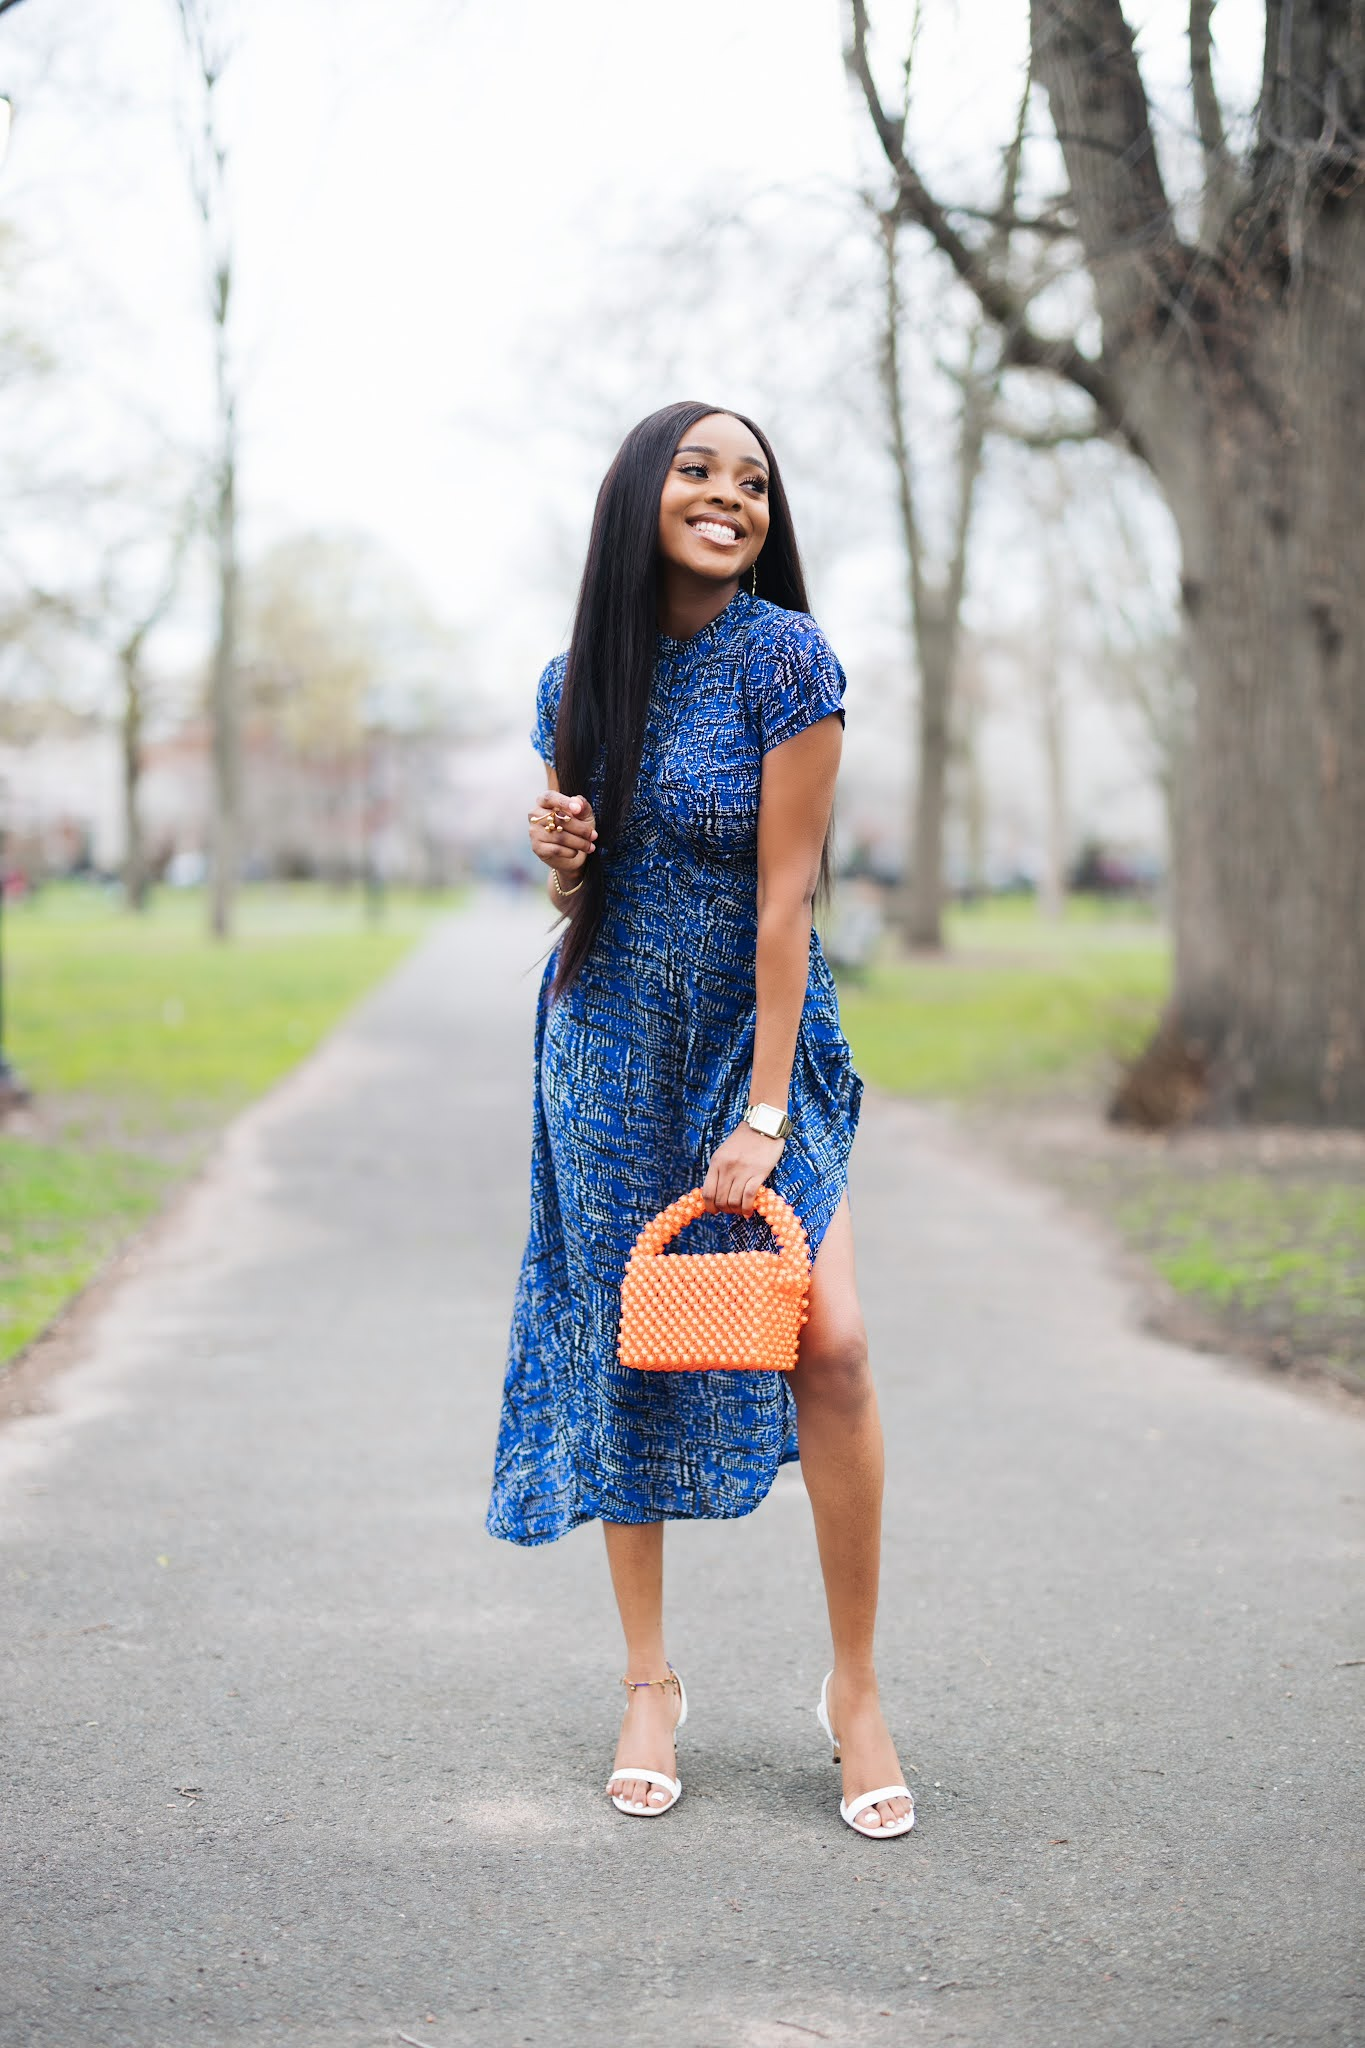 How to wear a printed dress